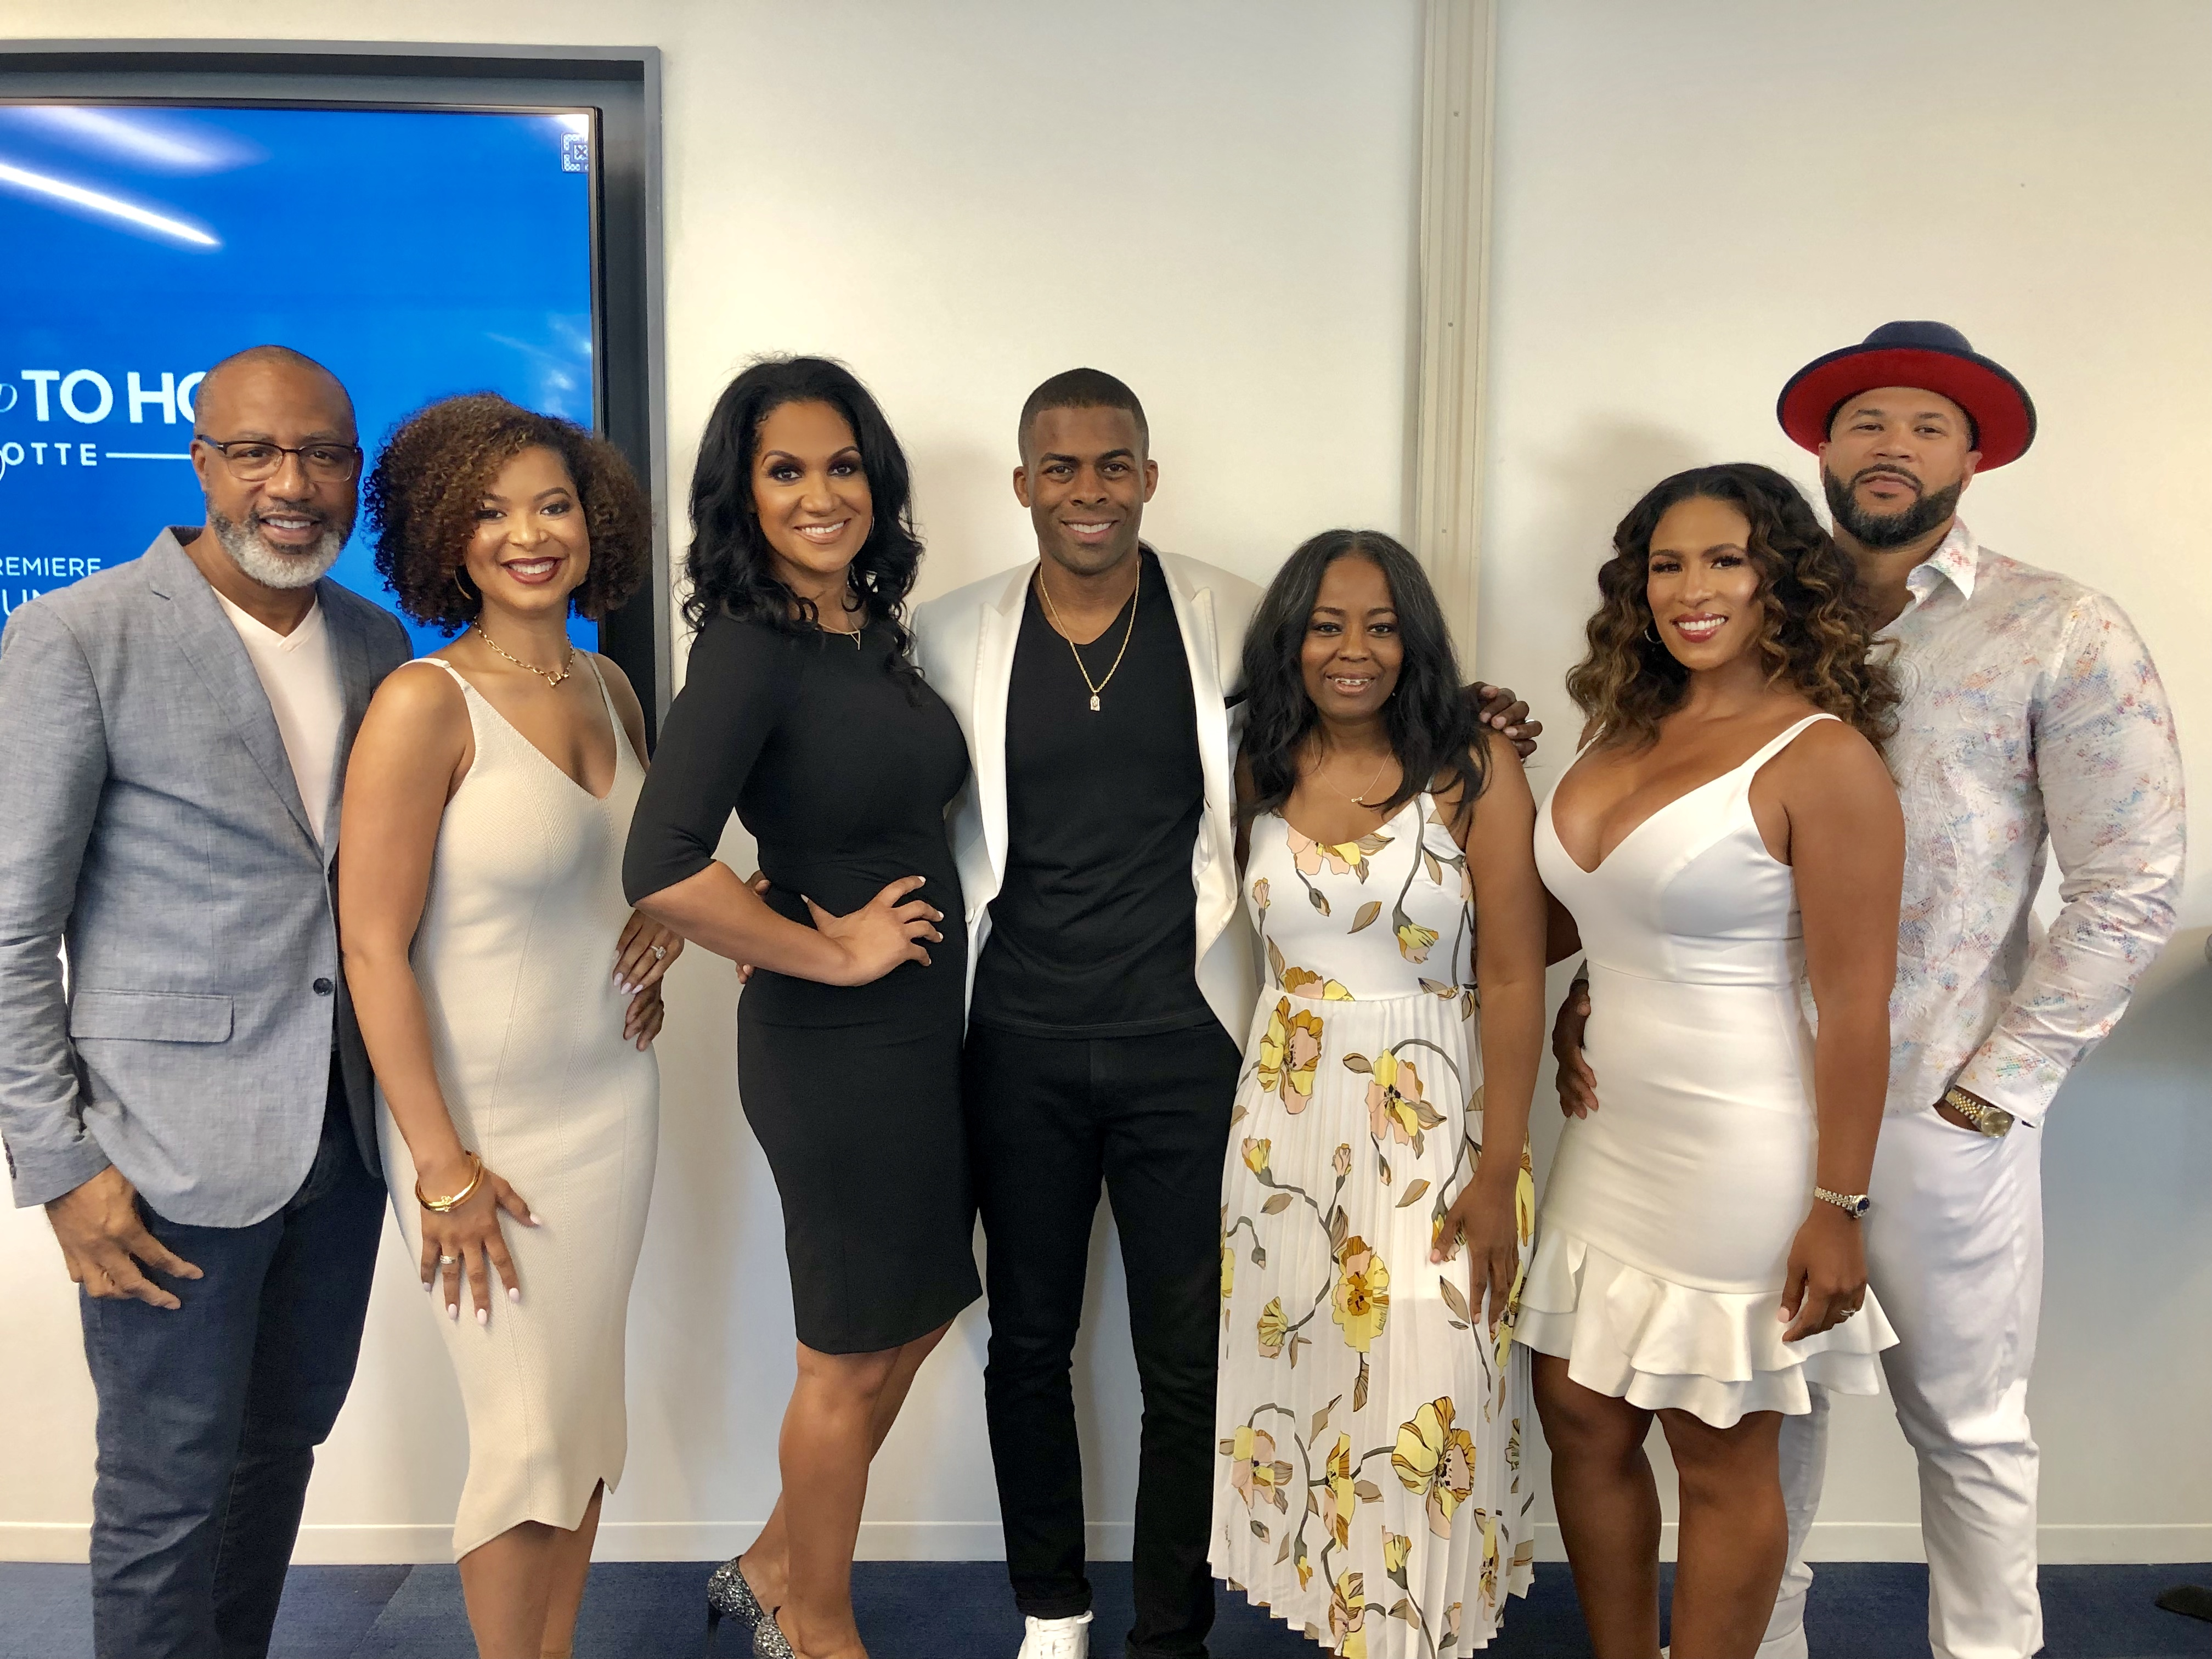 Own Tv's To Have & To Hold Charlotte Round Table Press Event In ATL